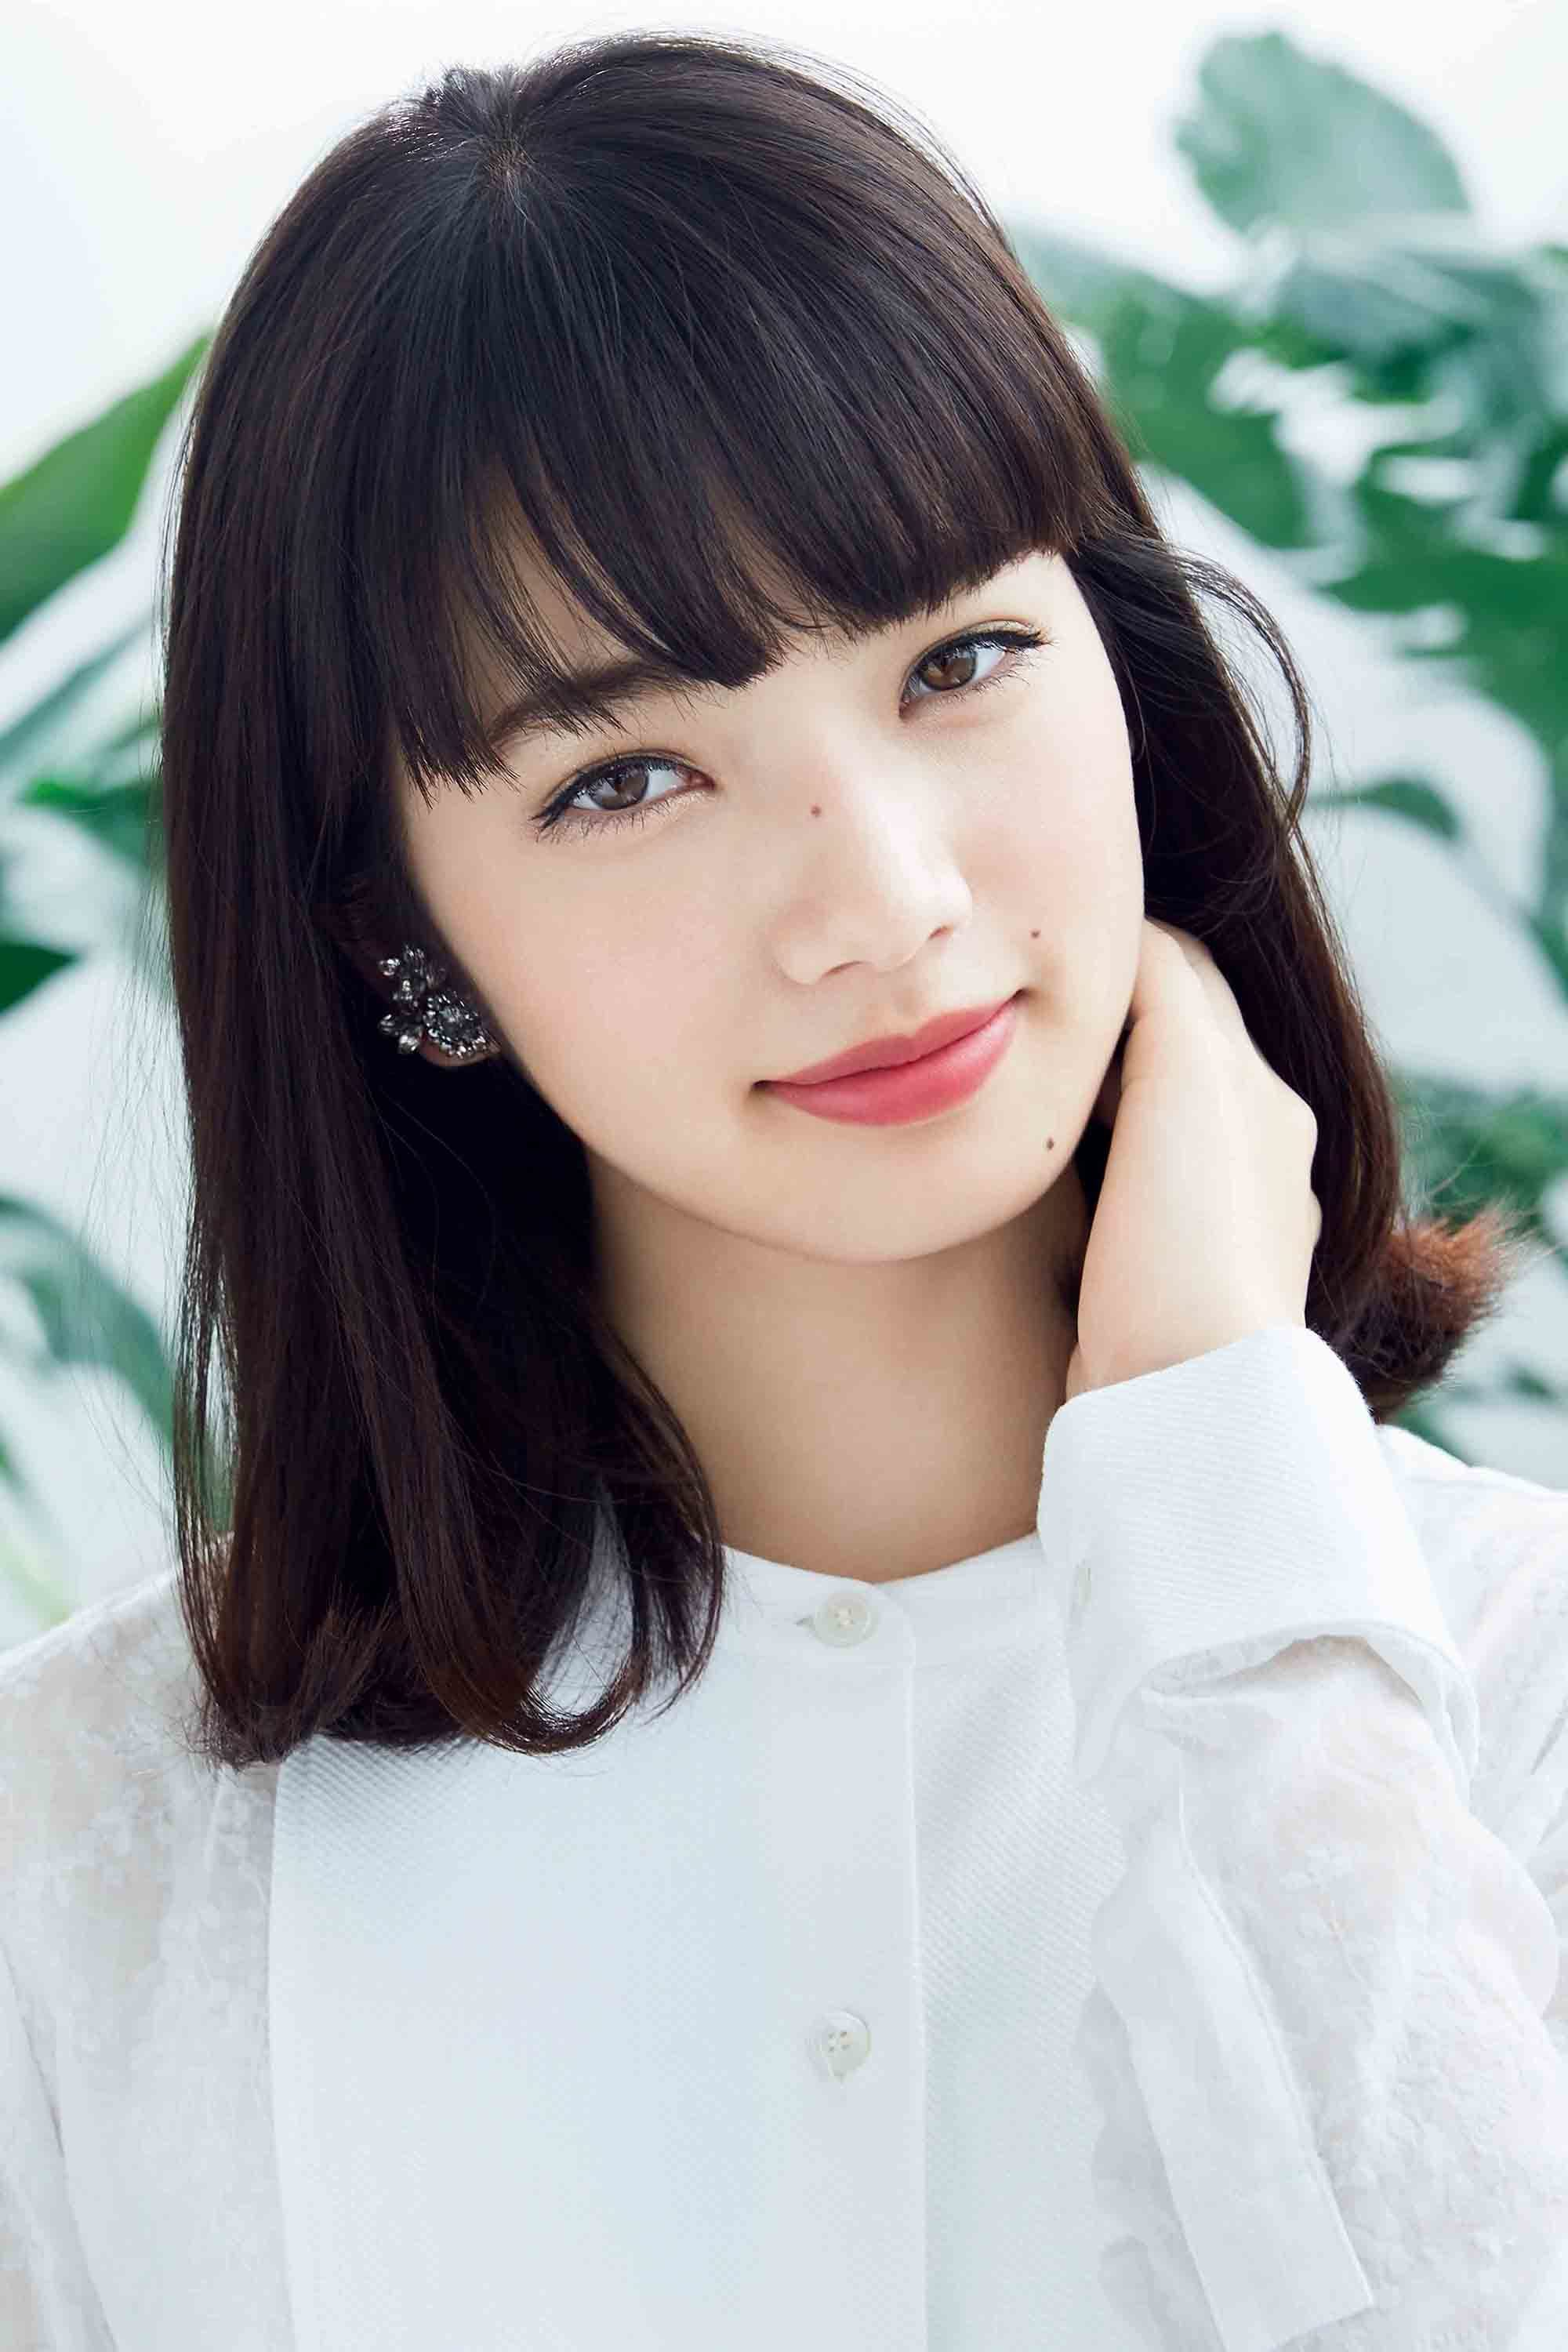 These Beautiful Japanese Actresses Are More Popular Than